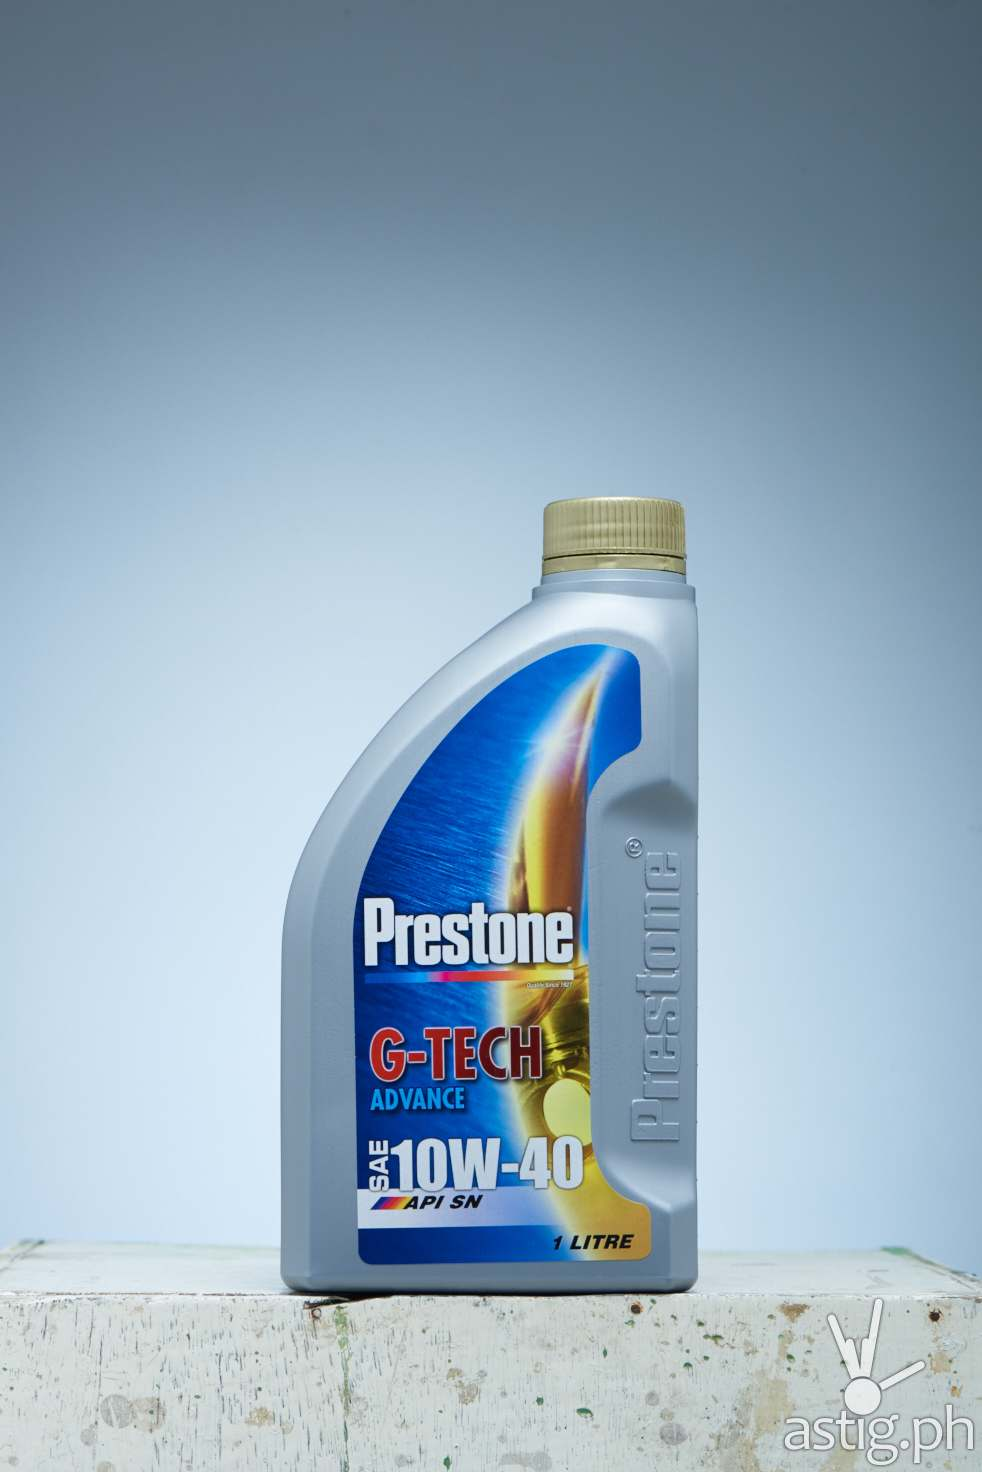 Prestone-Motor-Oil-G-Tech-Advance-Mineral-and-Syntethic-Blend_1-Liter.jpg